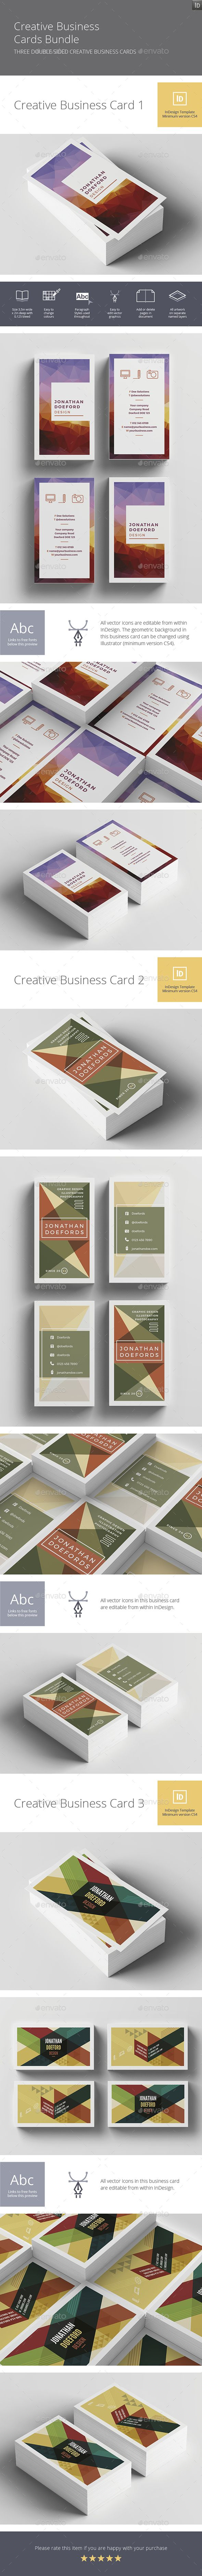 Creative Business Cards Bundle  — InDesign Template #phone icon #cog icon • Download ➝ https://graphicriver.net/item/creative-business-cards-bundle/18482352?ref=pxcr